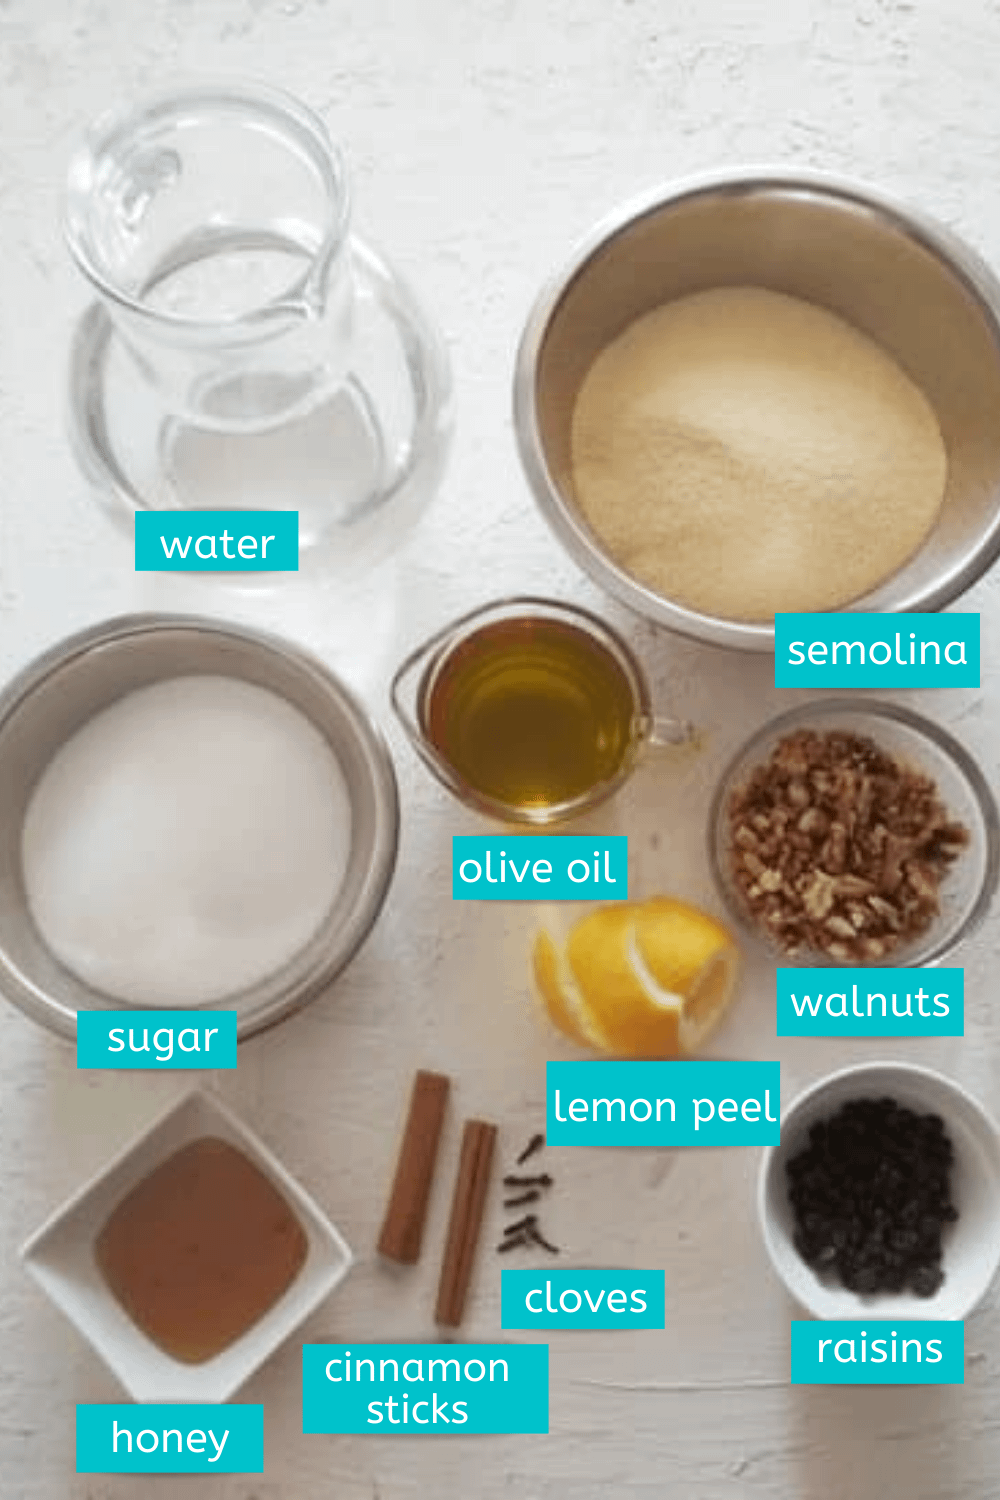 halva ingredients